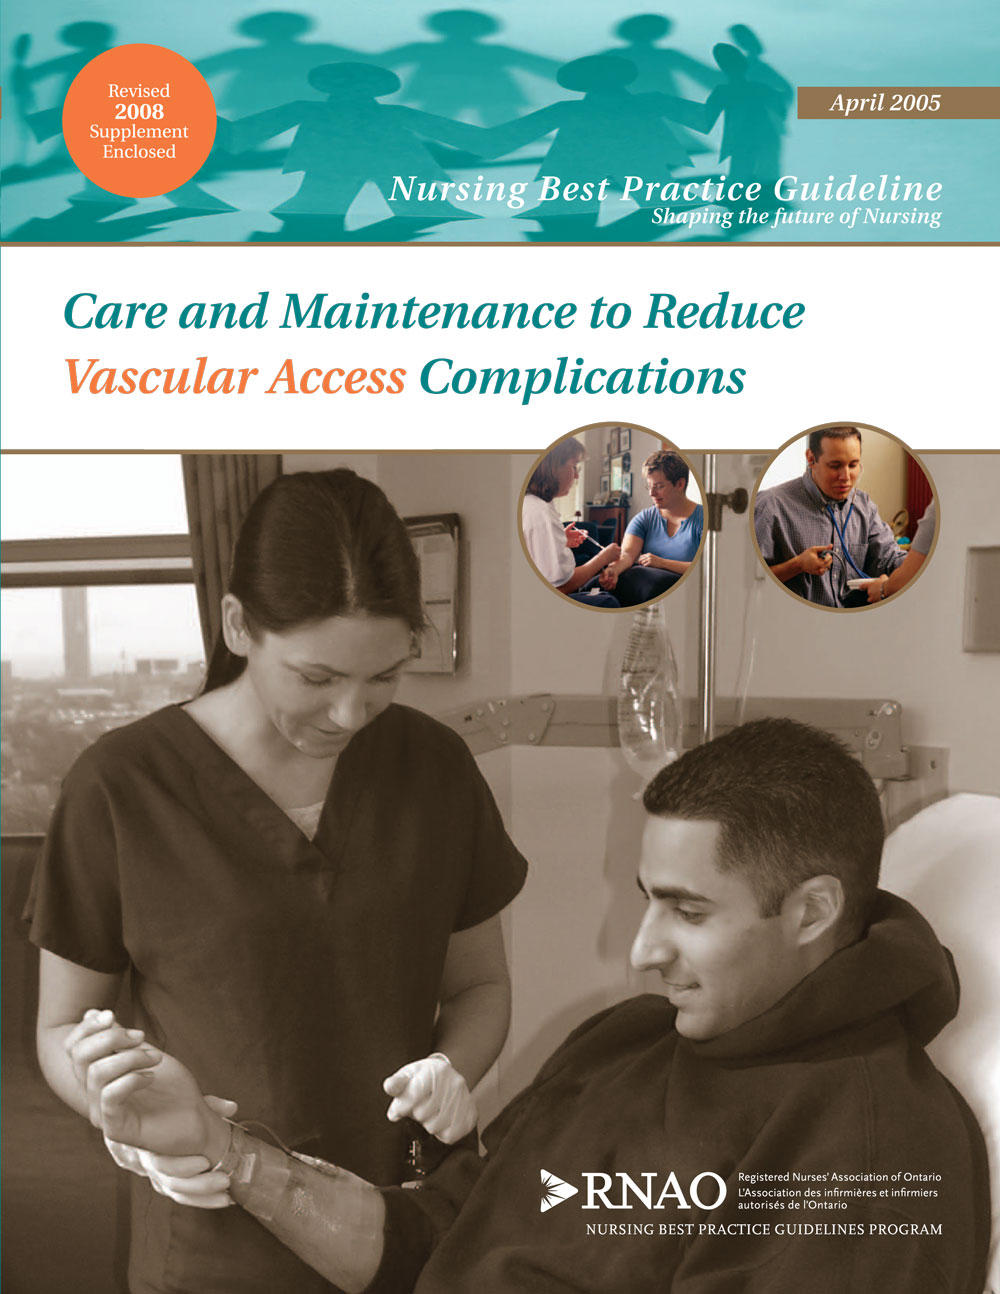 Care and maintenance: a selection of sites